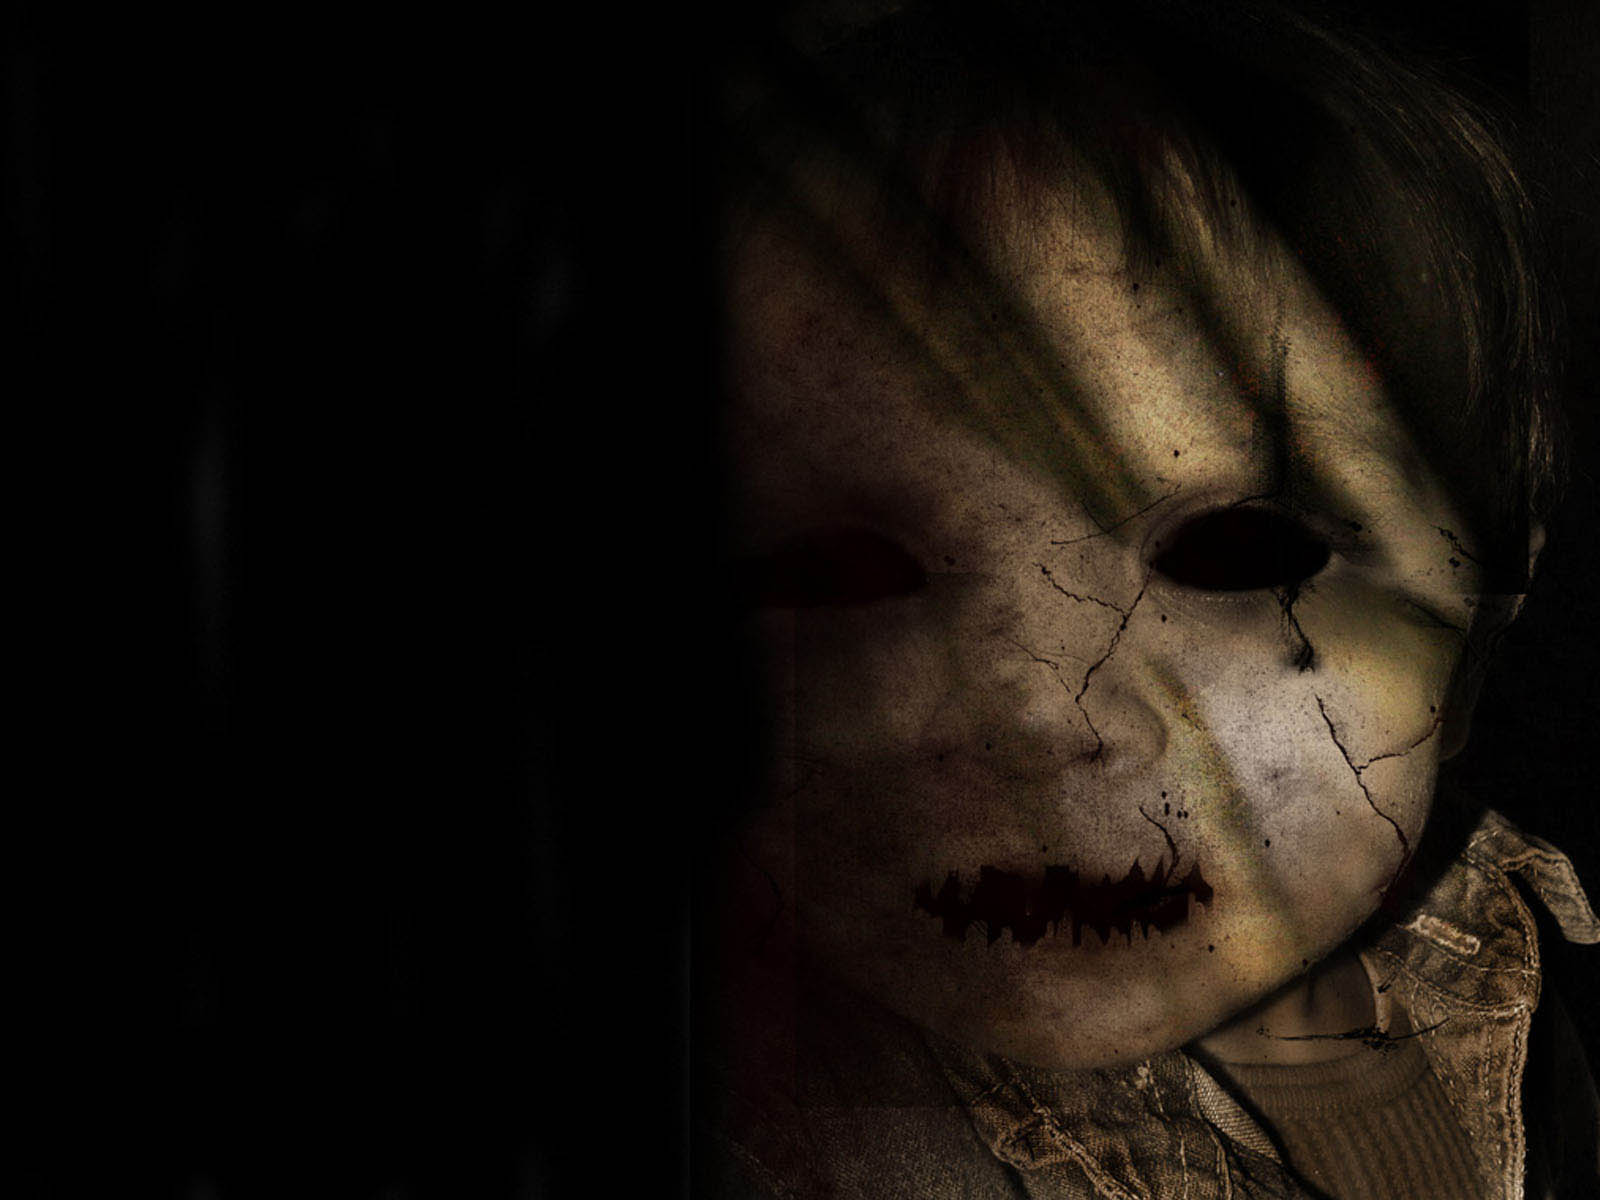 Tag Scary Horror Wallpapers Images Photos Pictures and Backgrounds 1600x1200